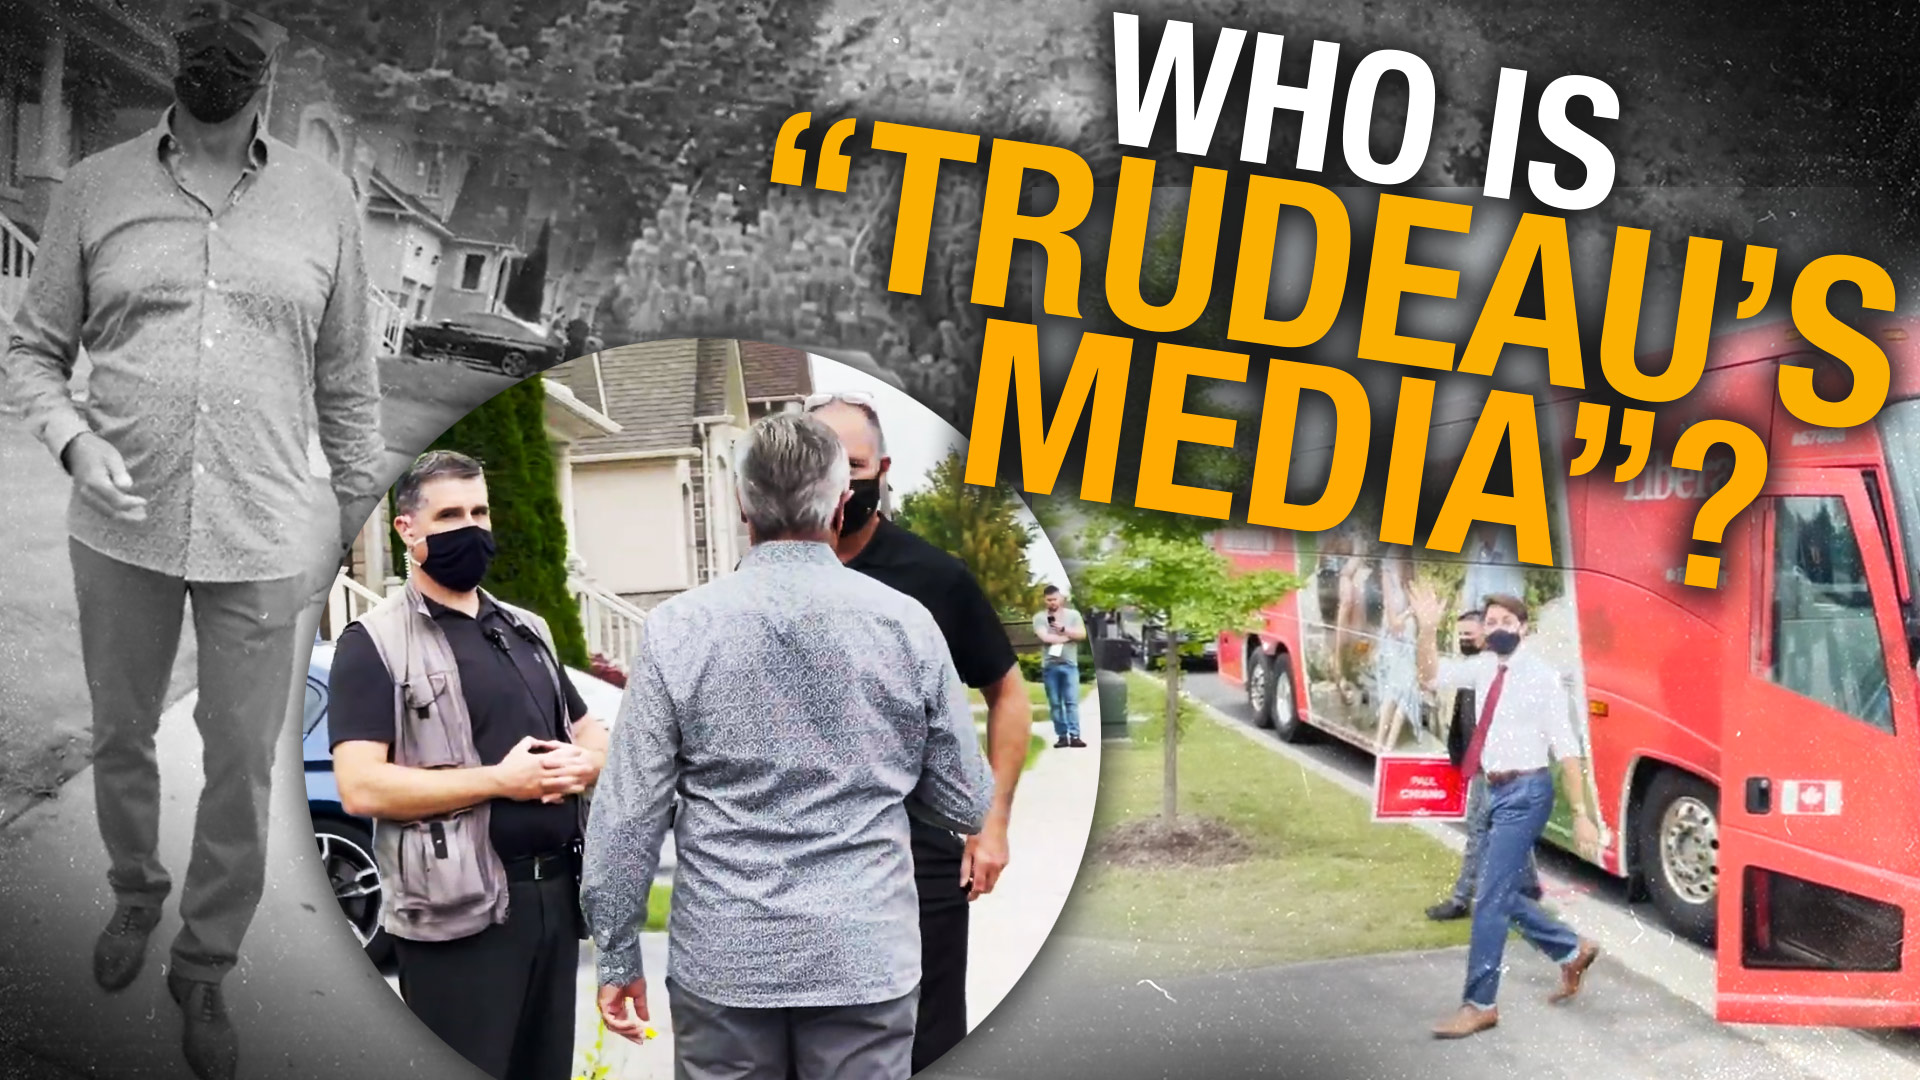 Trudeau's press gatekeeper says only 'his media' can ask questions